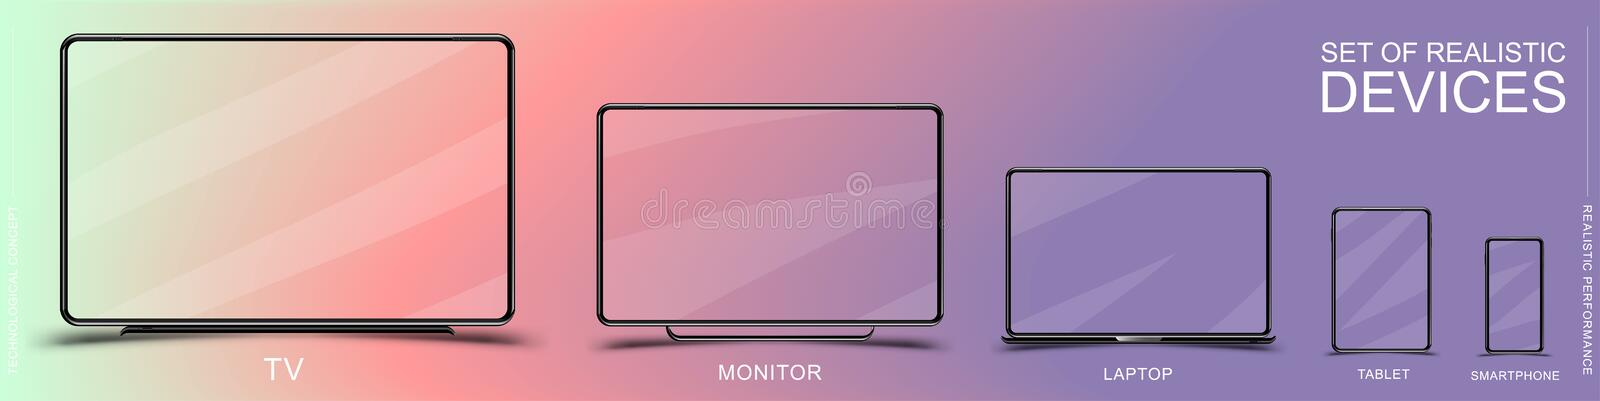 Set of realistic devices. Smartphone, tablet, laptop, monitor and TV on colored background. Flat vector illustration EPS 10.  vector illustration